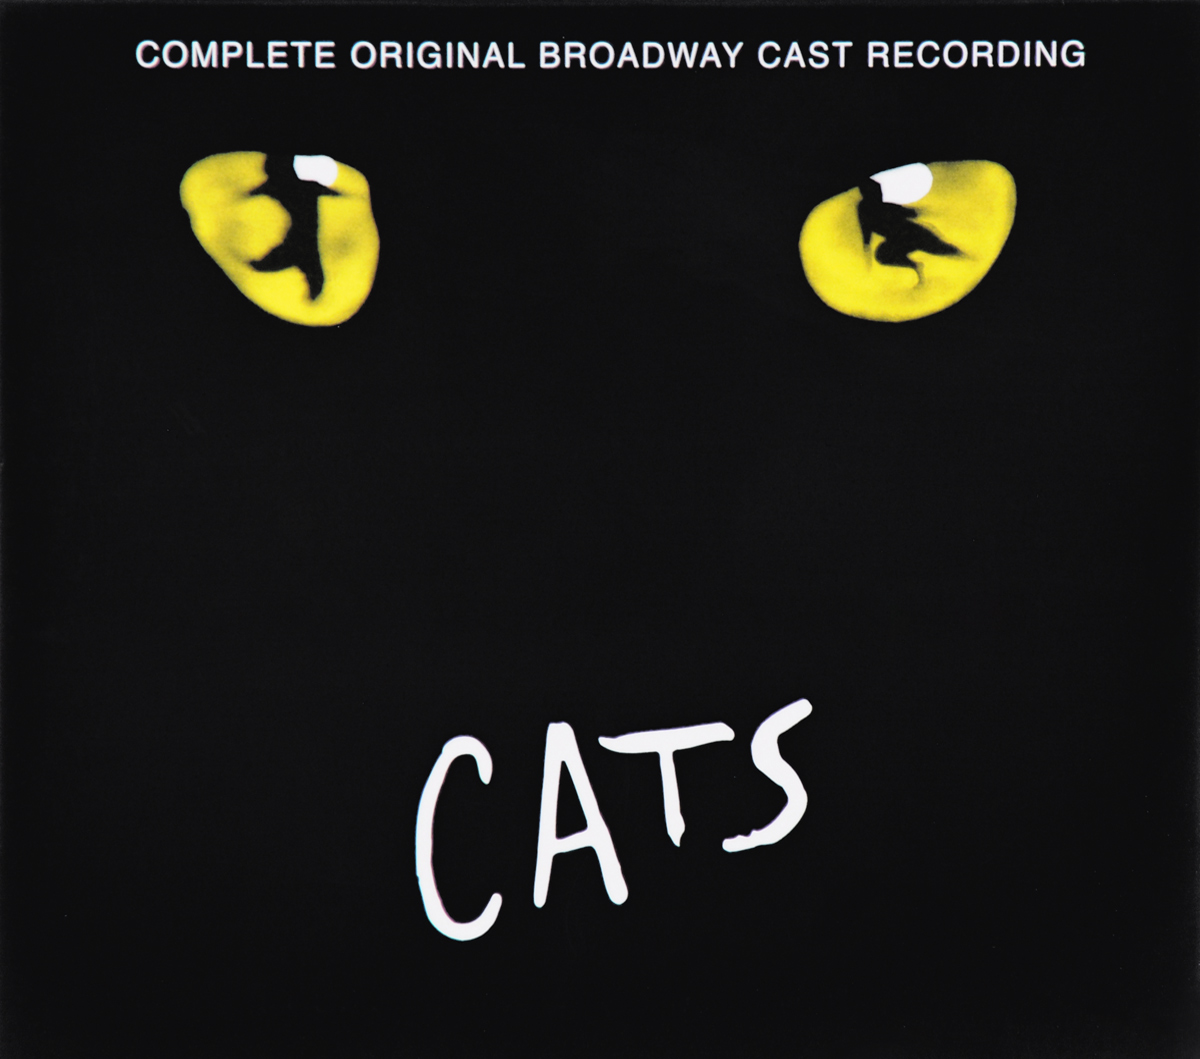 Original Broadway Cast Chorus Andrew Lloyd Webber. Cats. Complete Original Broadway Cast Recording. Deluxe Edition (2 CD) andrew lloyd webber love never dies deluxe edition 2 cd dvd